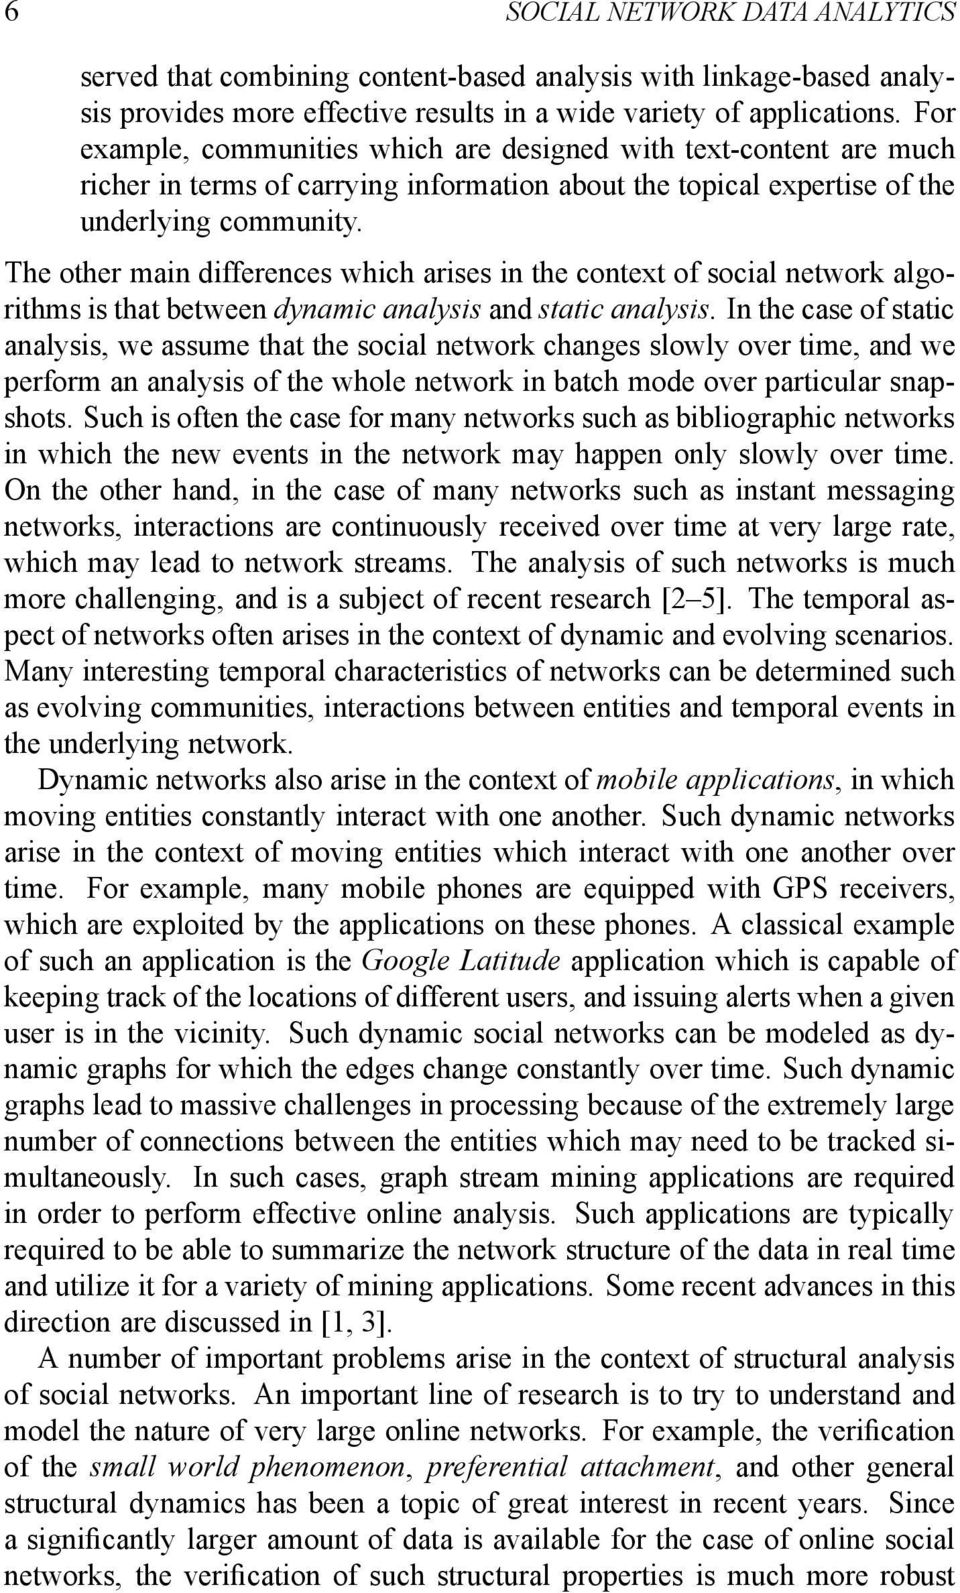 The other main differences which arises in the context of social network algorithms is that between dynamic analysis and static analysis.